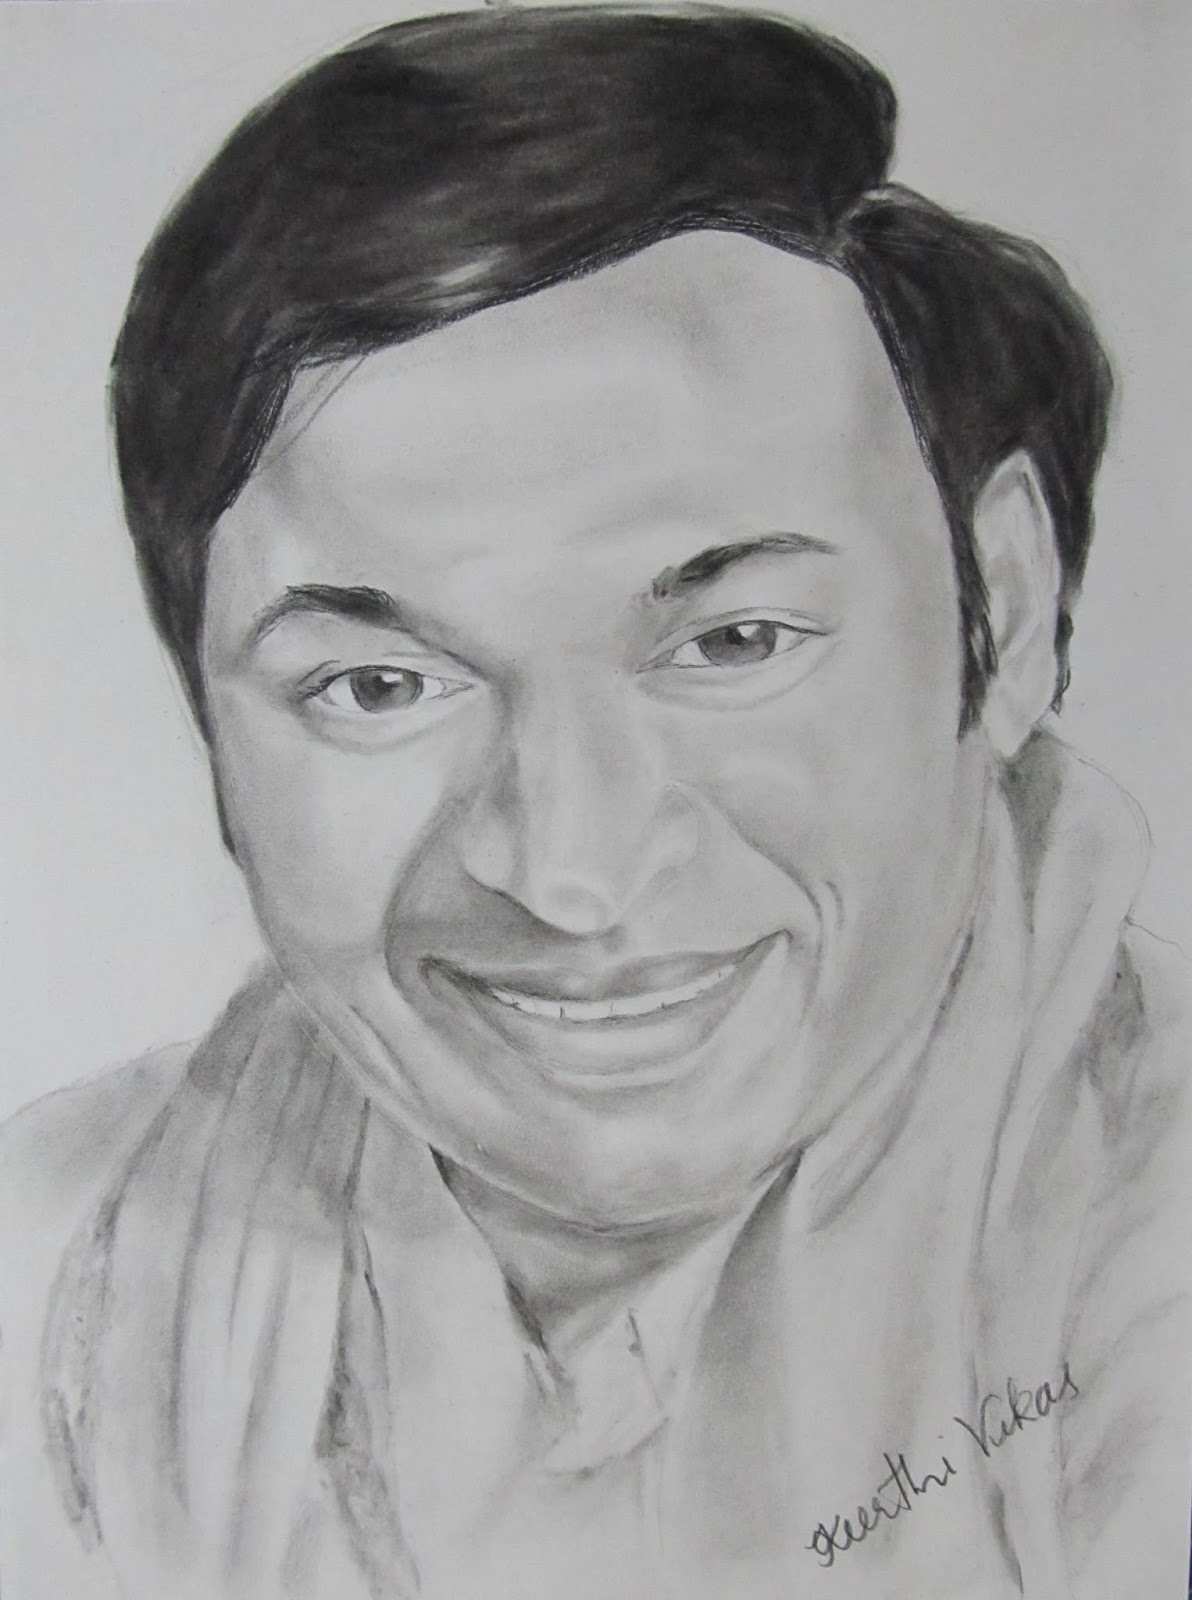 Dr rajkumar is one of the greatest indian actor who worked mainly in films of regional language kannada he can be considered as one of the greatest